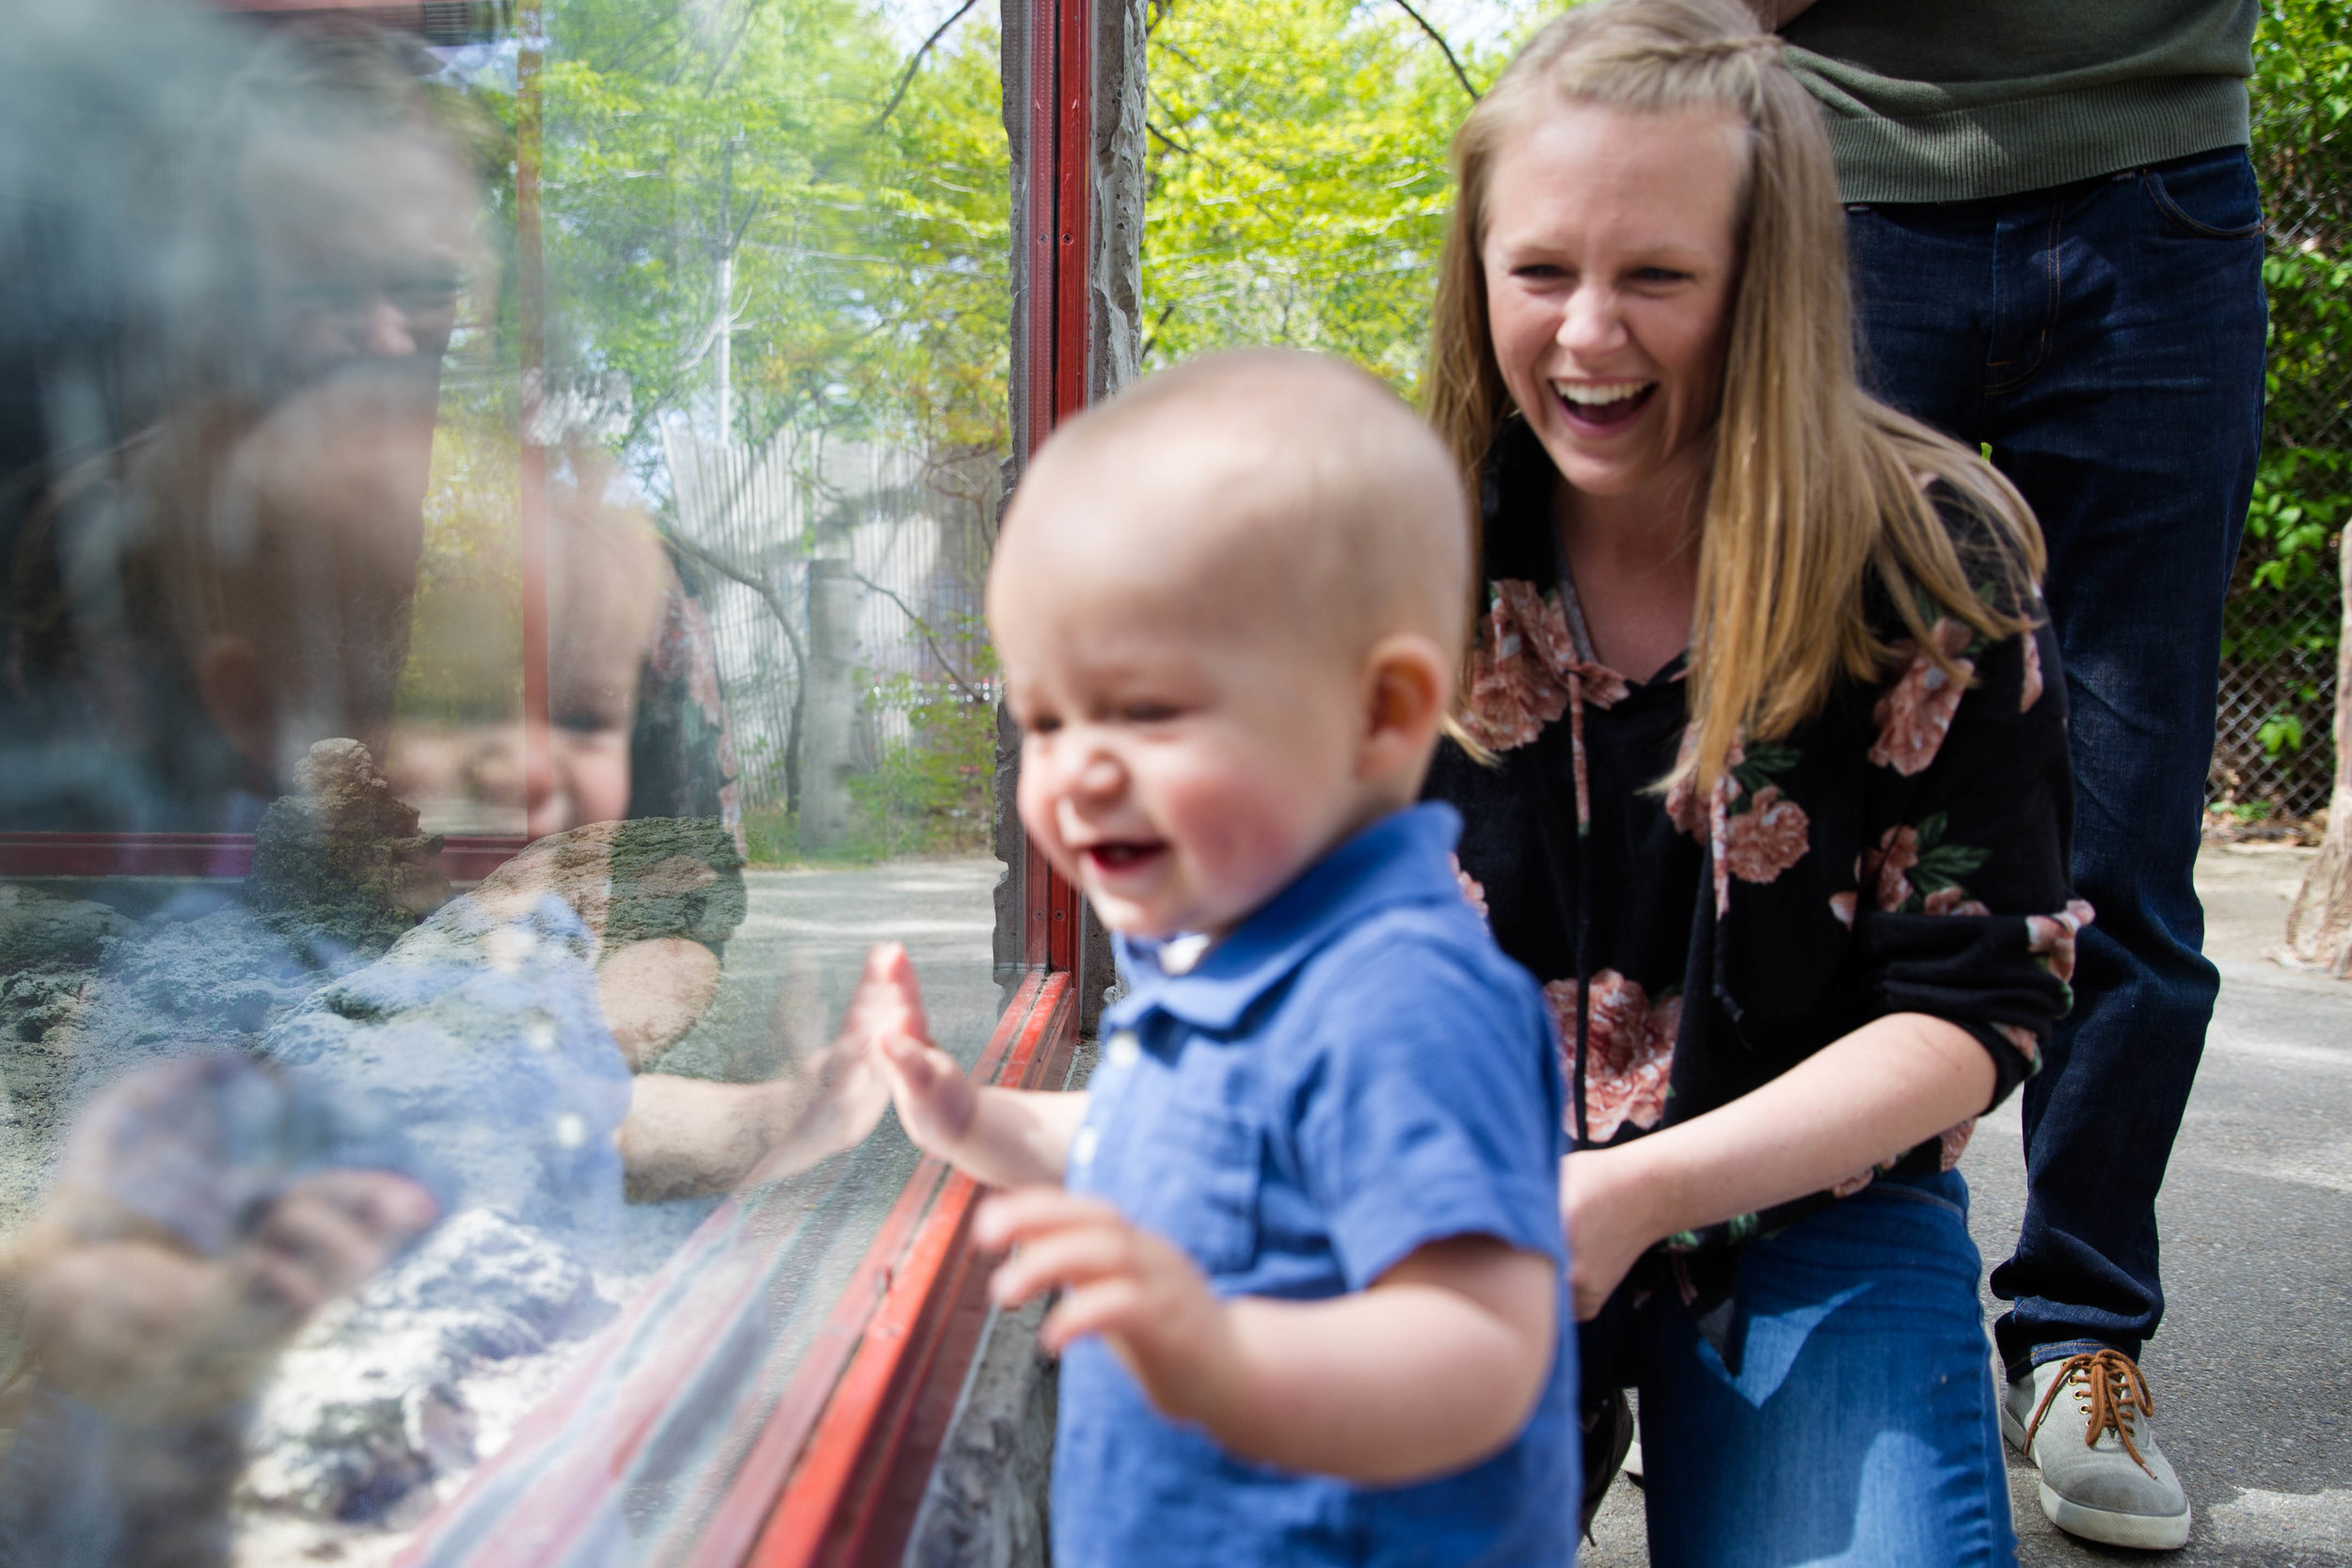 Little one year old boy laughing at the animal behind the glass at the Boise Zoo while mom laughs at his reaction. Dad standing behind.